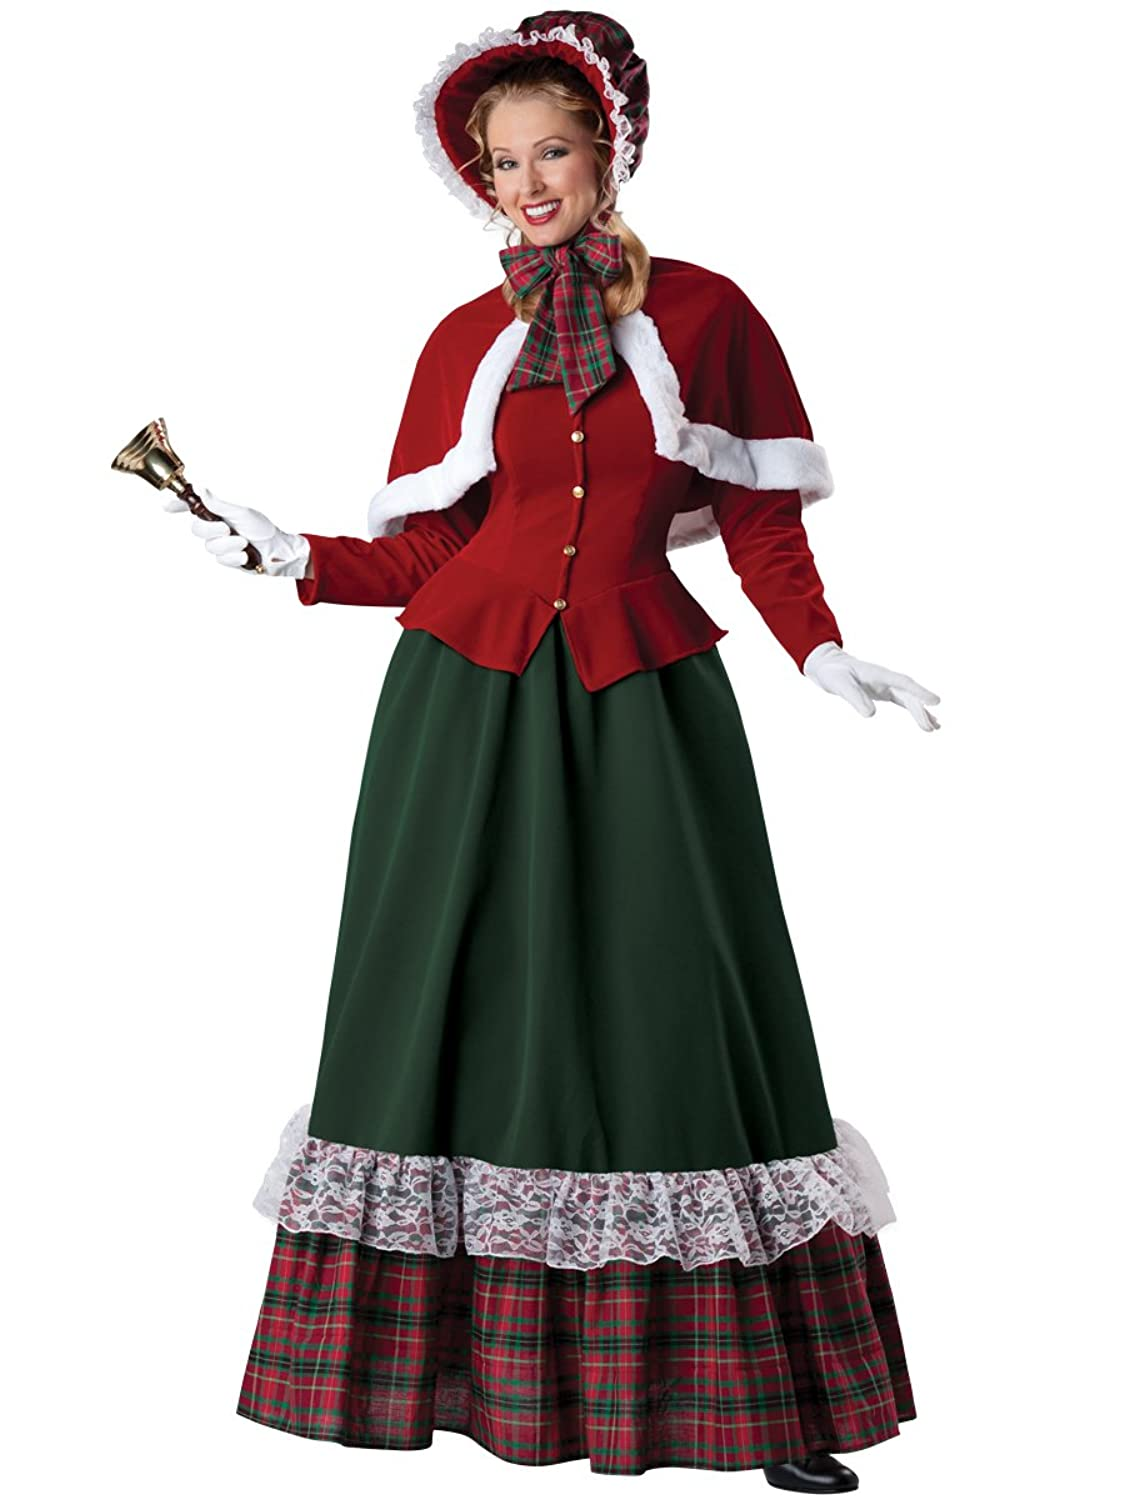 1900s, 1910s, WW1, Titanic Costumes Yuletide Lady Holiday Costume  AT vintagedancer.com